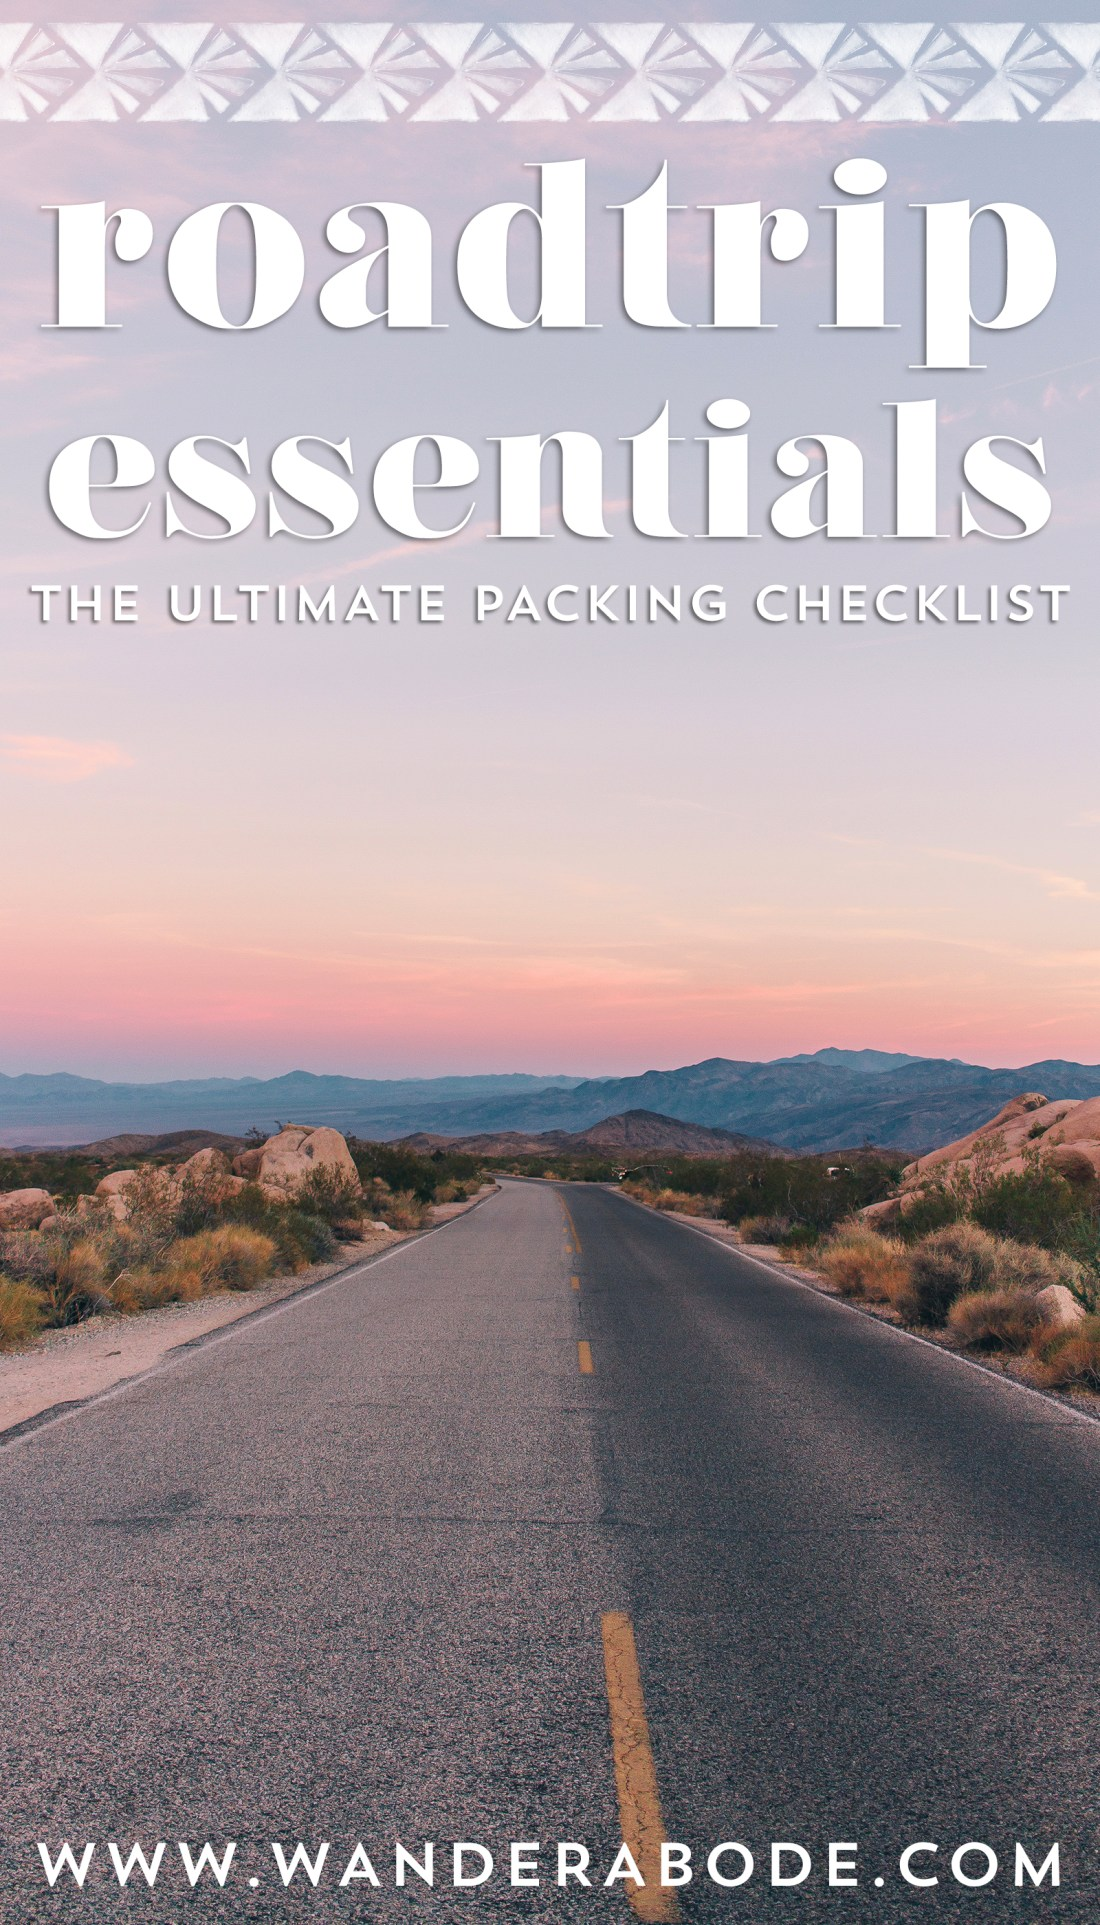 road trip essentials, roadtrip essentials for women, ultimate packing checklist, what to pack for a roadtrip, what to pack for a road trip